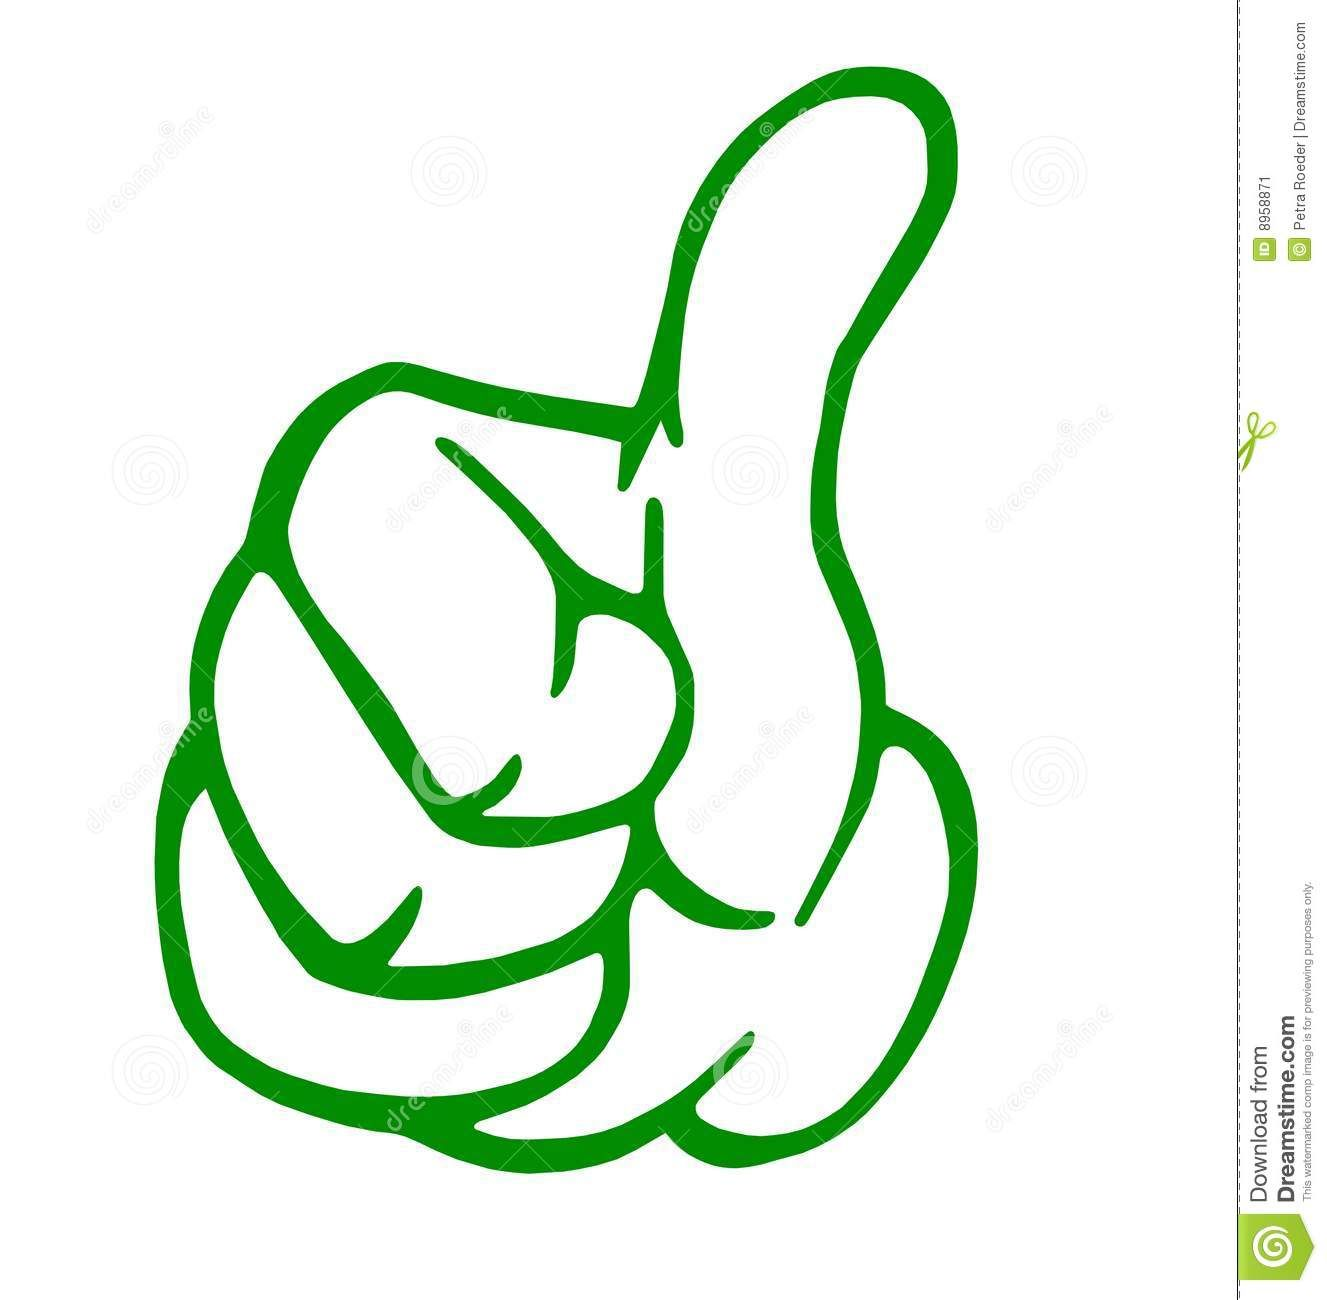 Green Thumb Up Simple Line Drawings Skull Art Tattoo Thumbs Up Icon